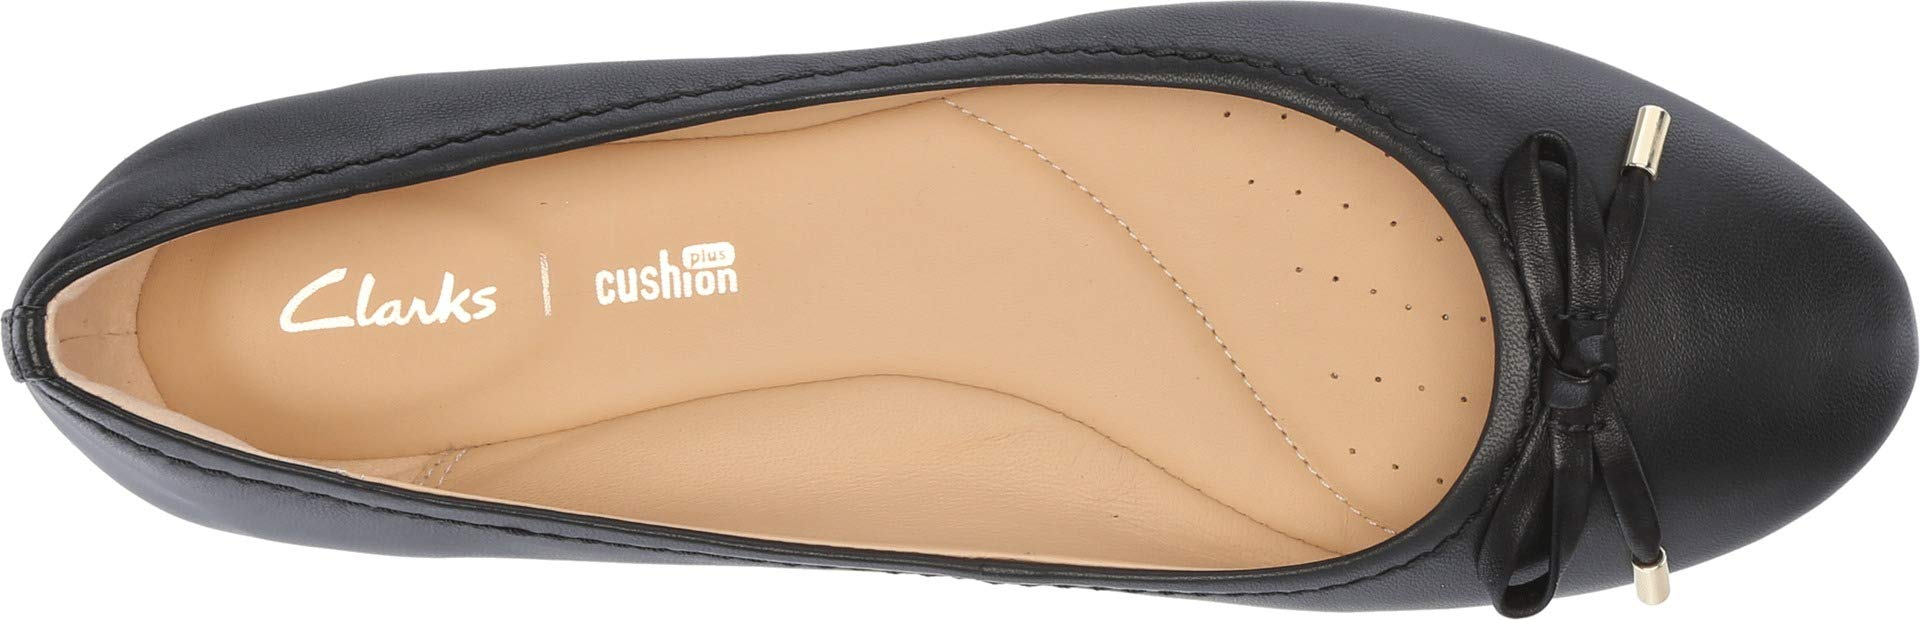 CLARKS Womens Grace Lily Ballet Flat, Black Leather, Size 7.5 by CLARKS (Image #2)